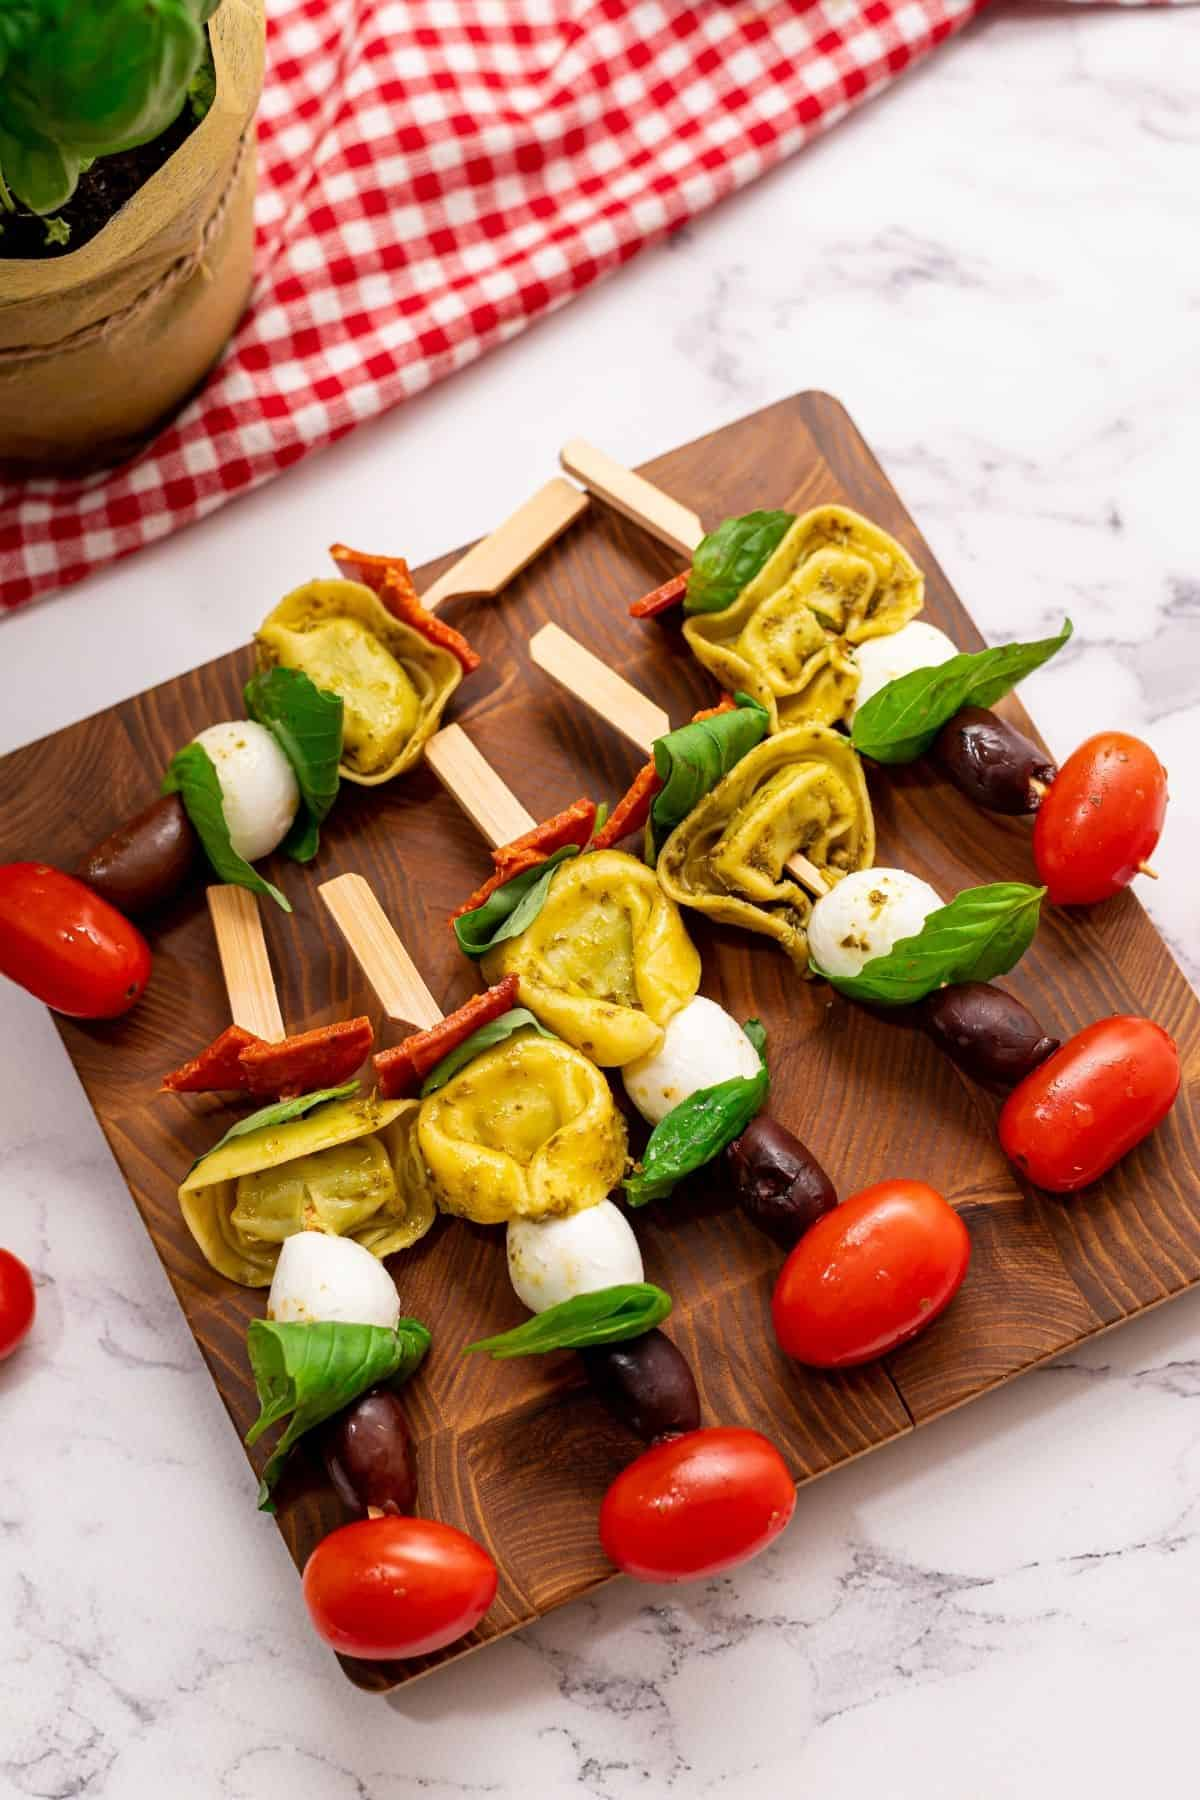 Appetizer sticks with cherry tomatoes, tortellini, basil, mozzarella and pepperoni on wooden cutting board.